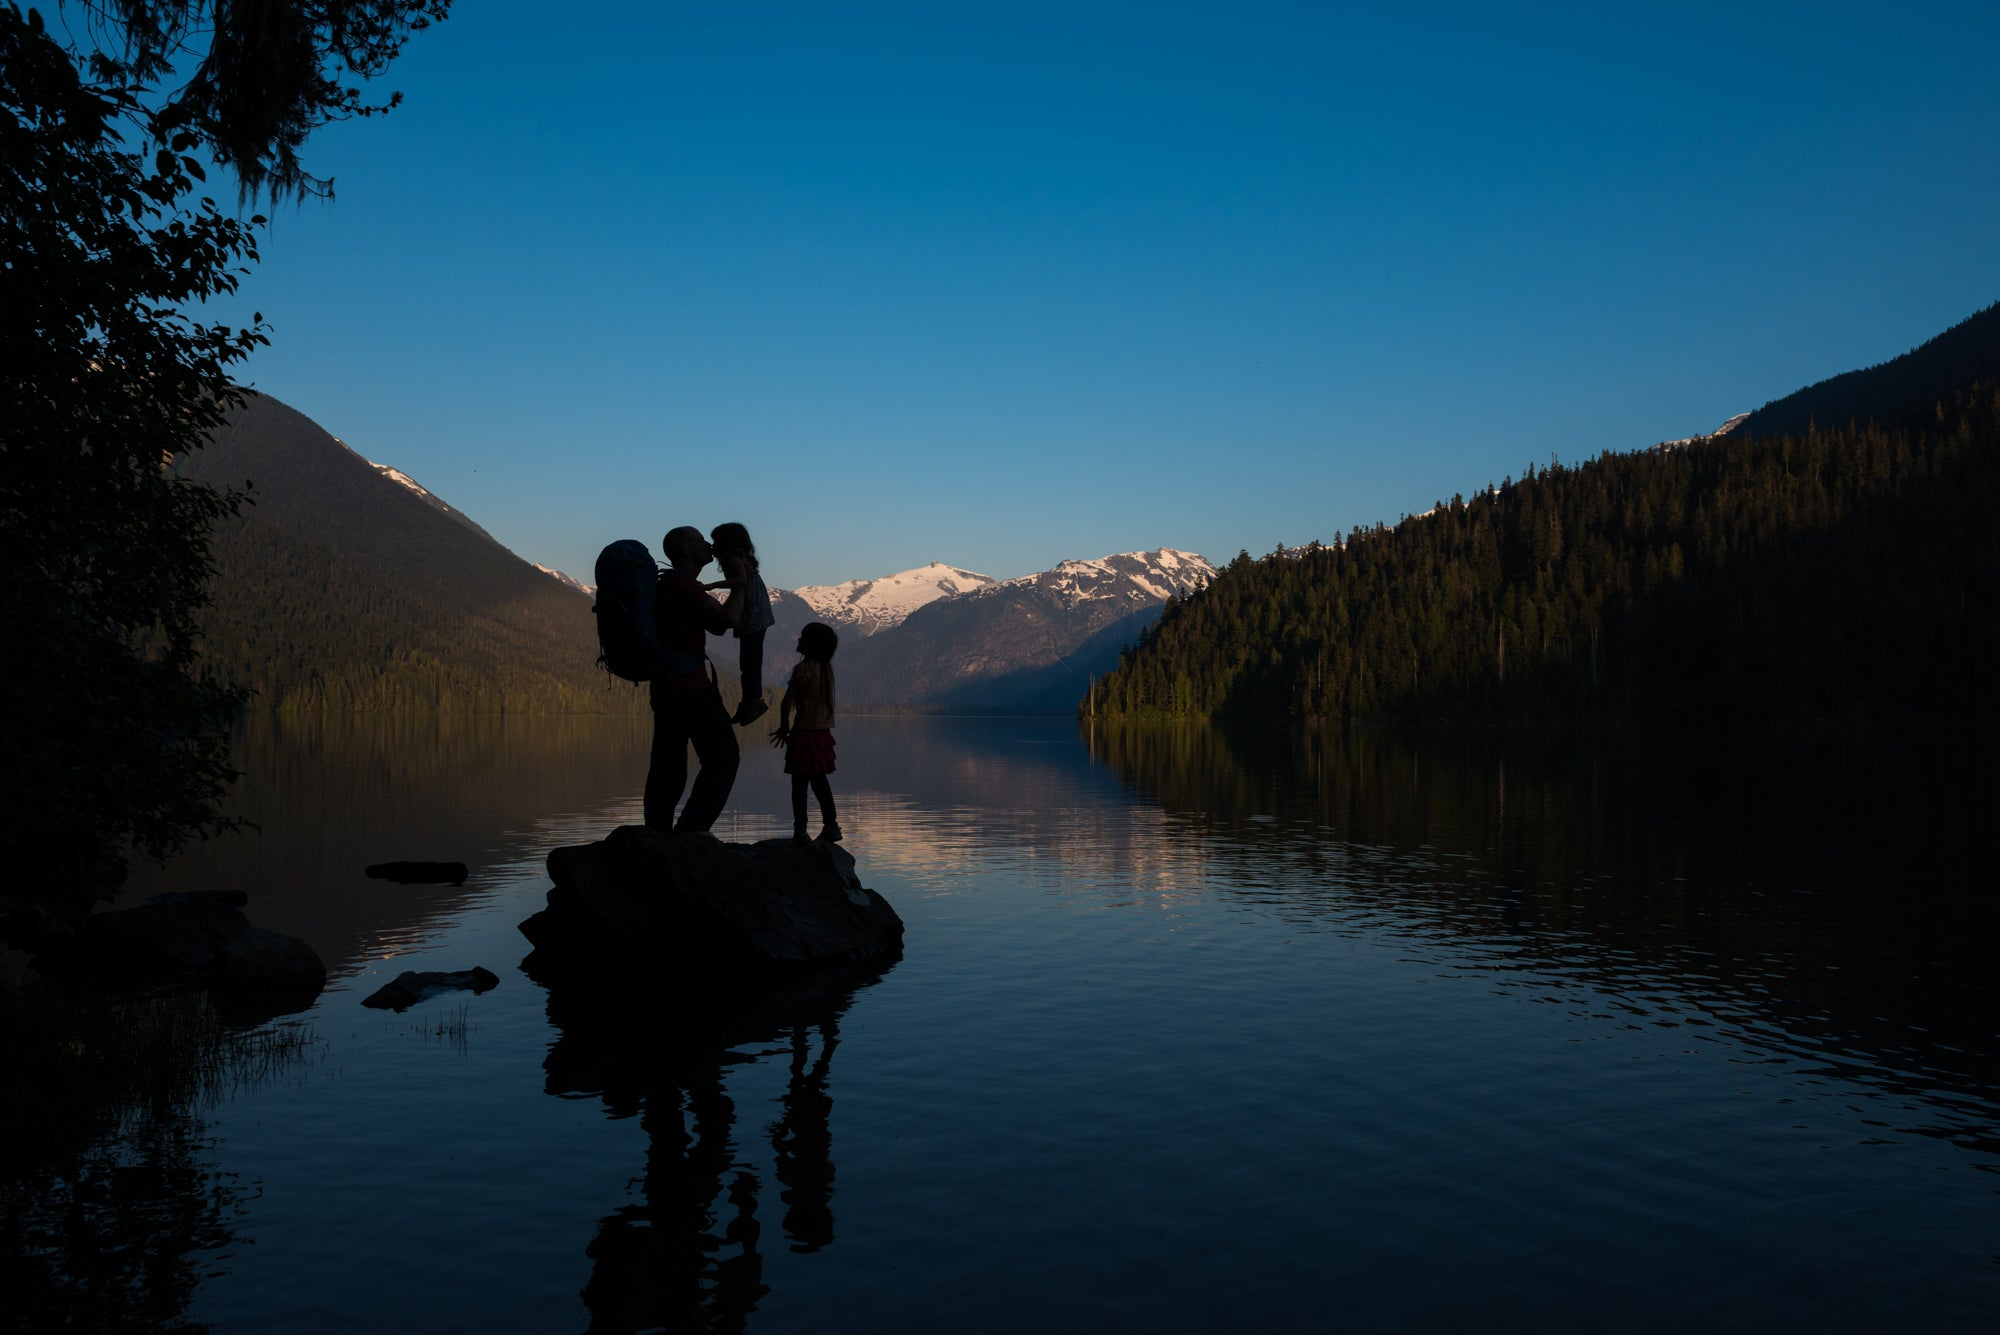 British Columbia Landscape and adventure photographer